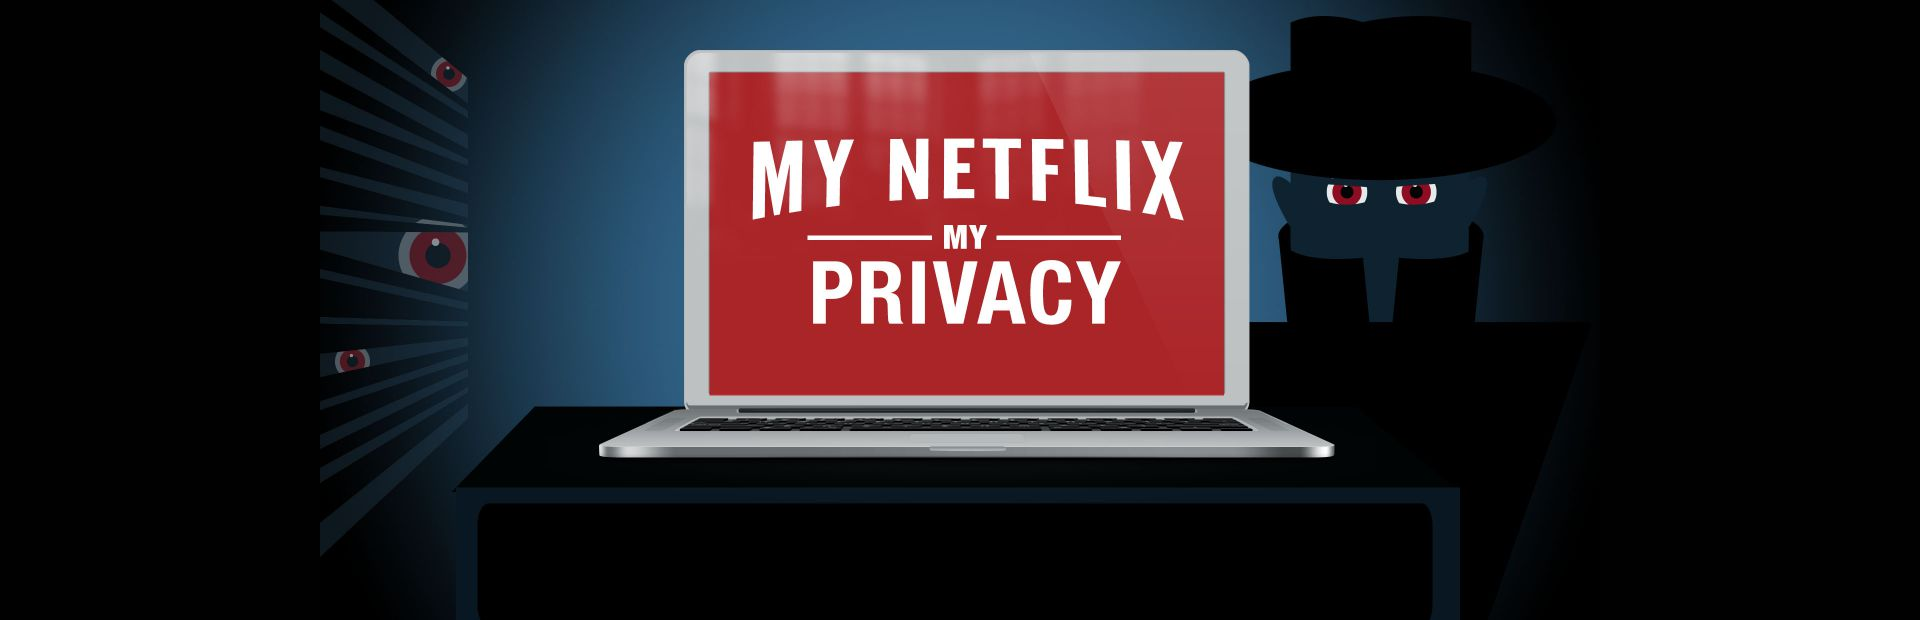 My Netflix, My Privacy